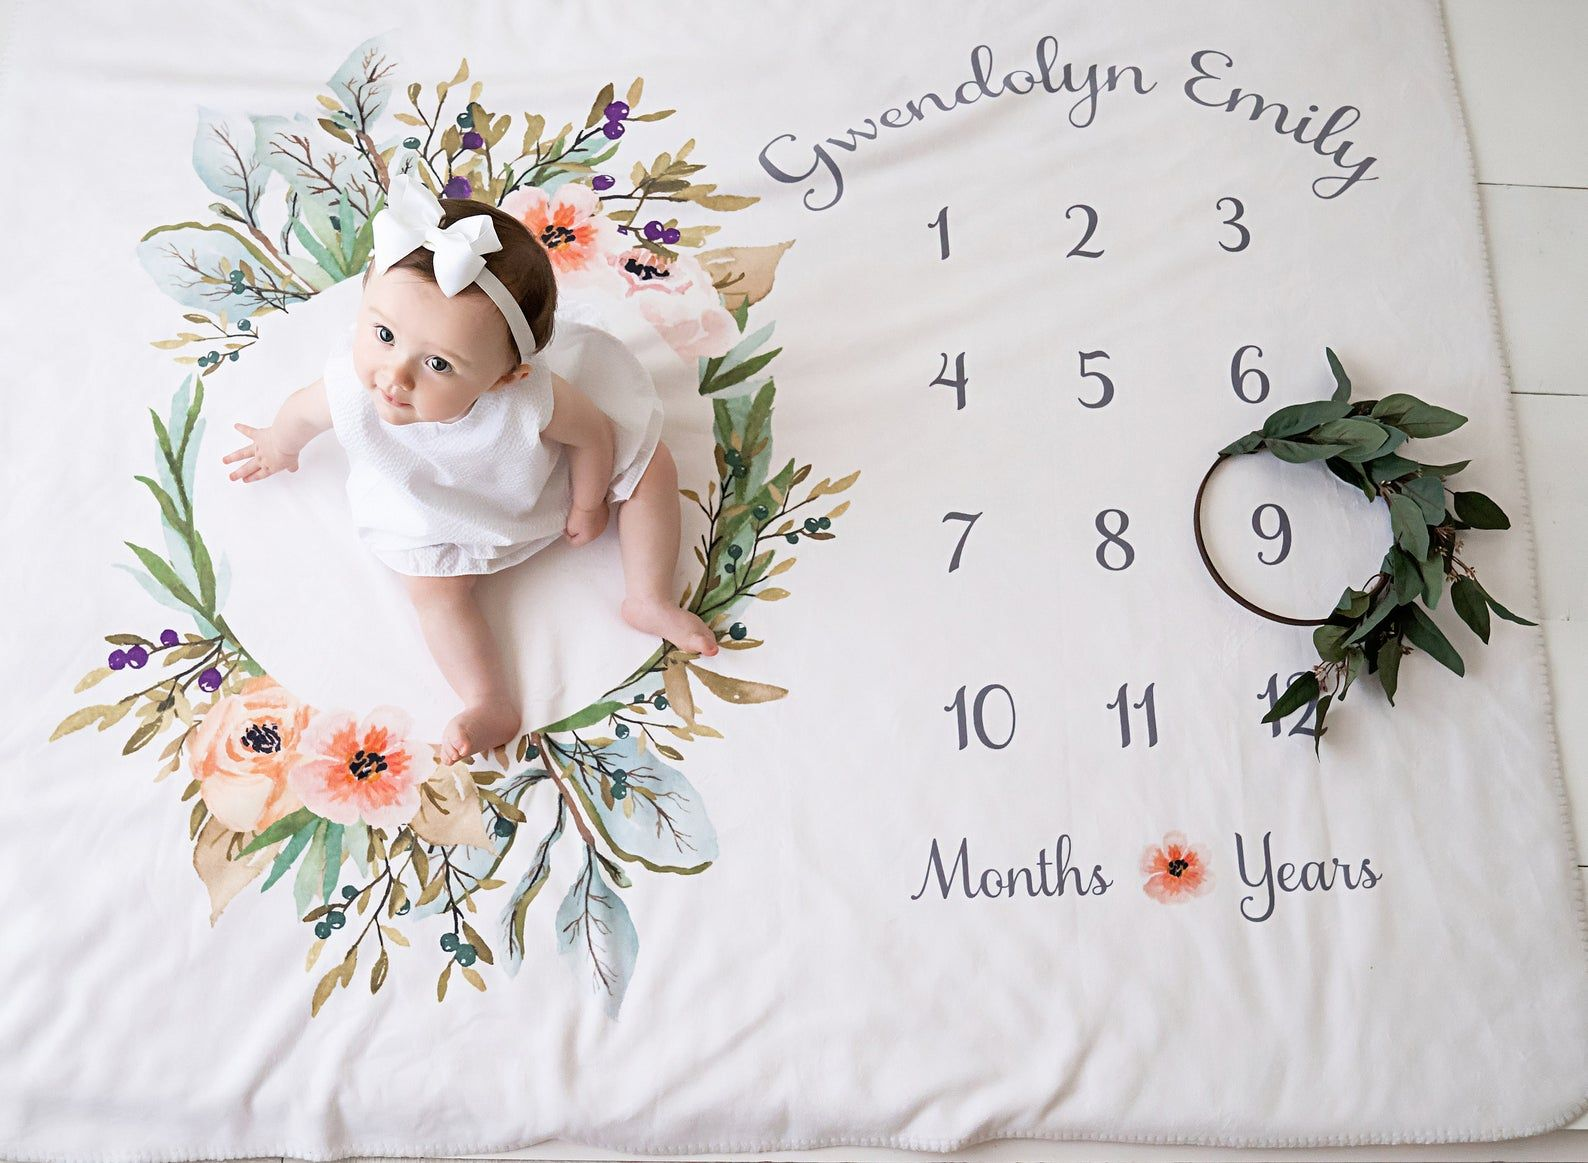 Baby Month Milestone Blanket Olive Wreath Horizontal Girl Personalized Baby Blanket Track Growth And Age New Mom Baby Shower Gift In 2020 Milestone Blanket Baby Milestone Blanket Baby Shower Return Gifts